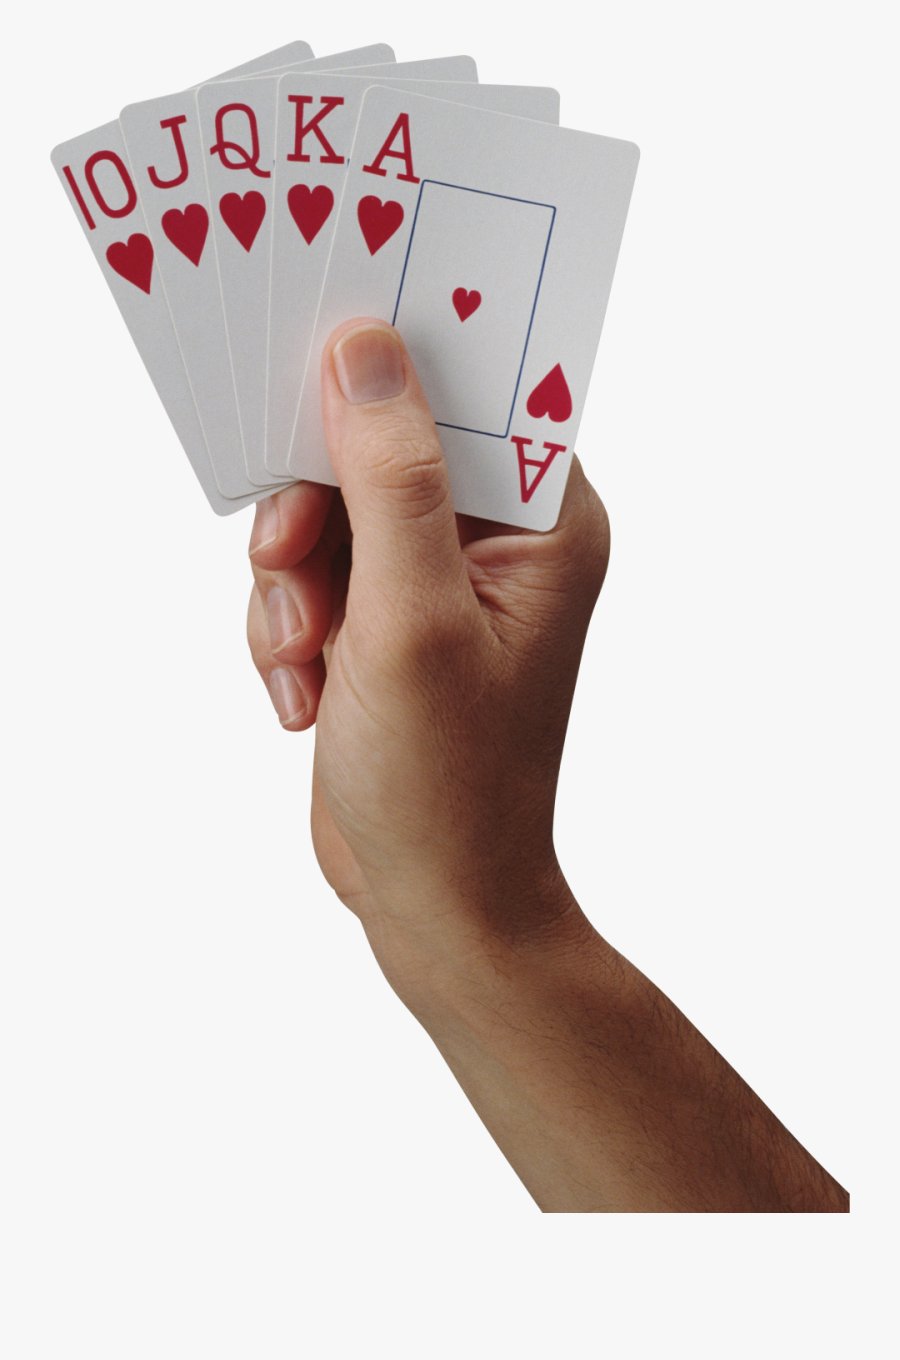 Playing Card On Hand Png Image - Cards In Hand Png, Transparent Clipart